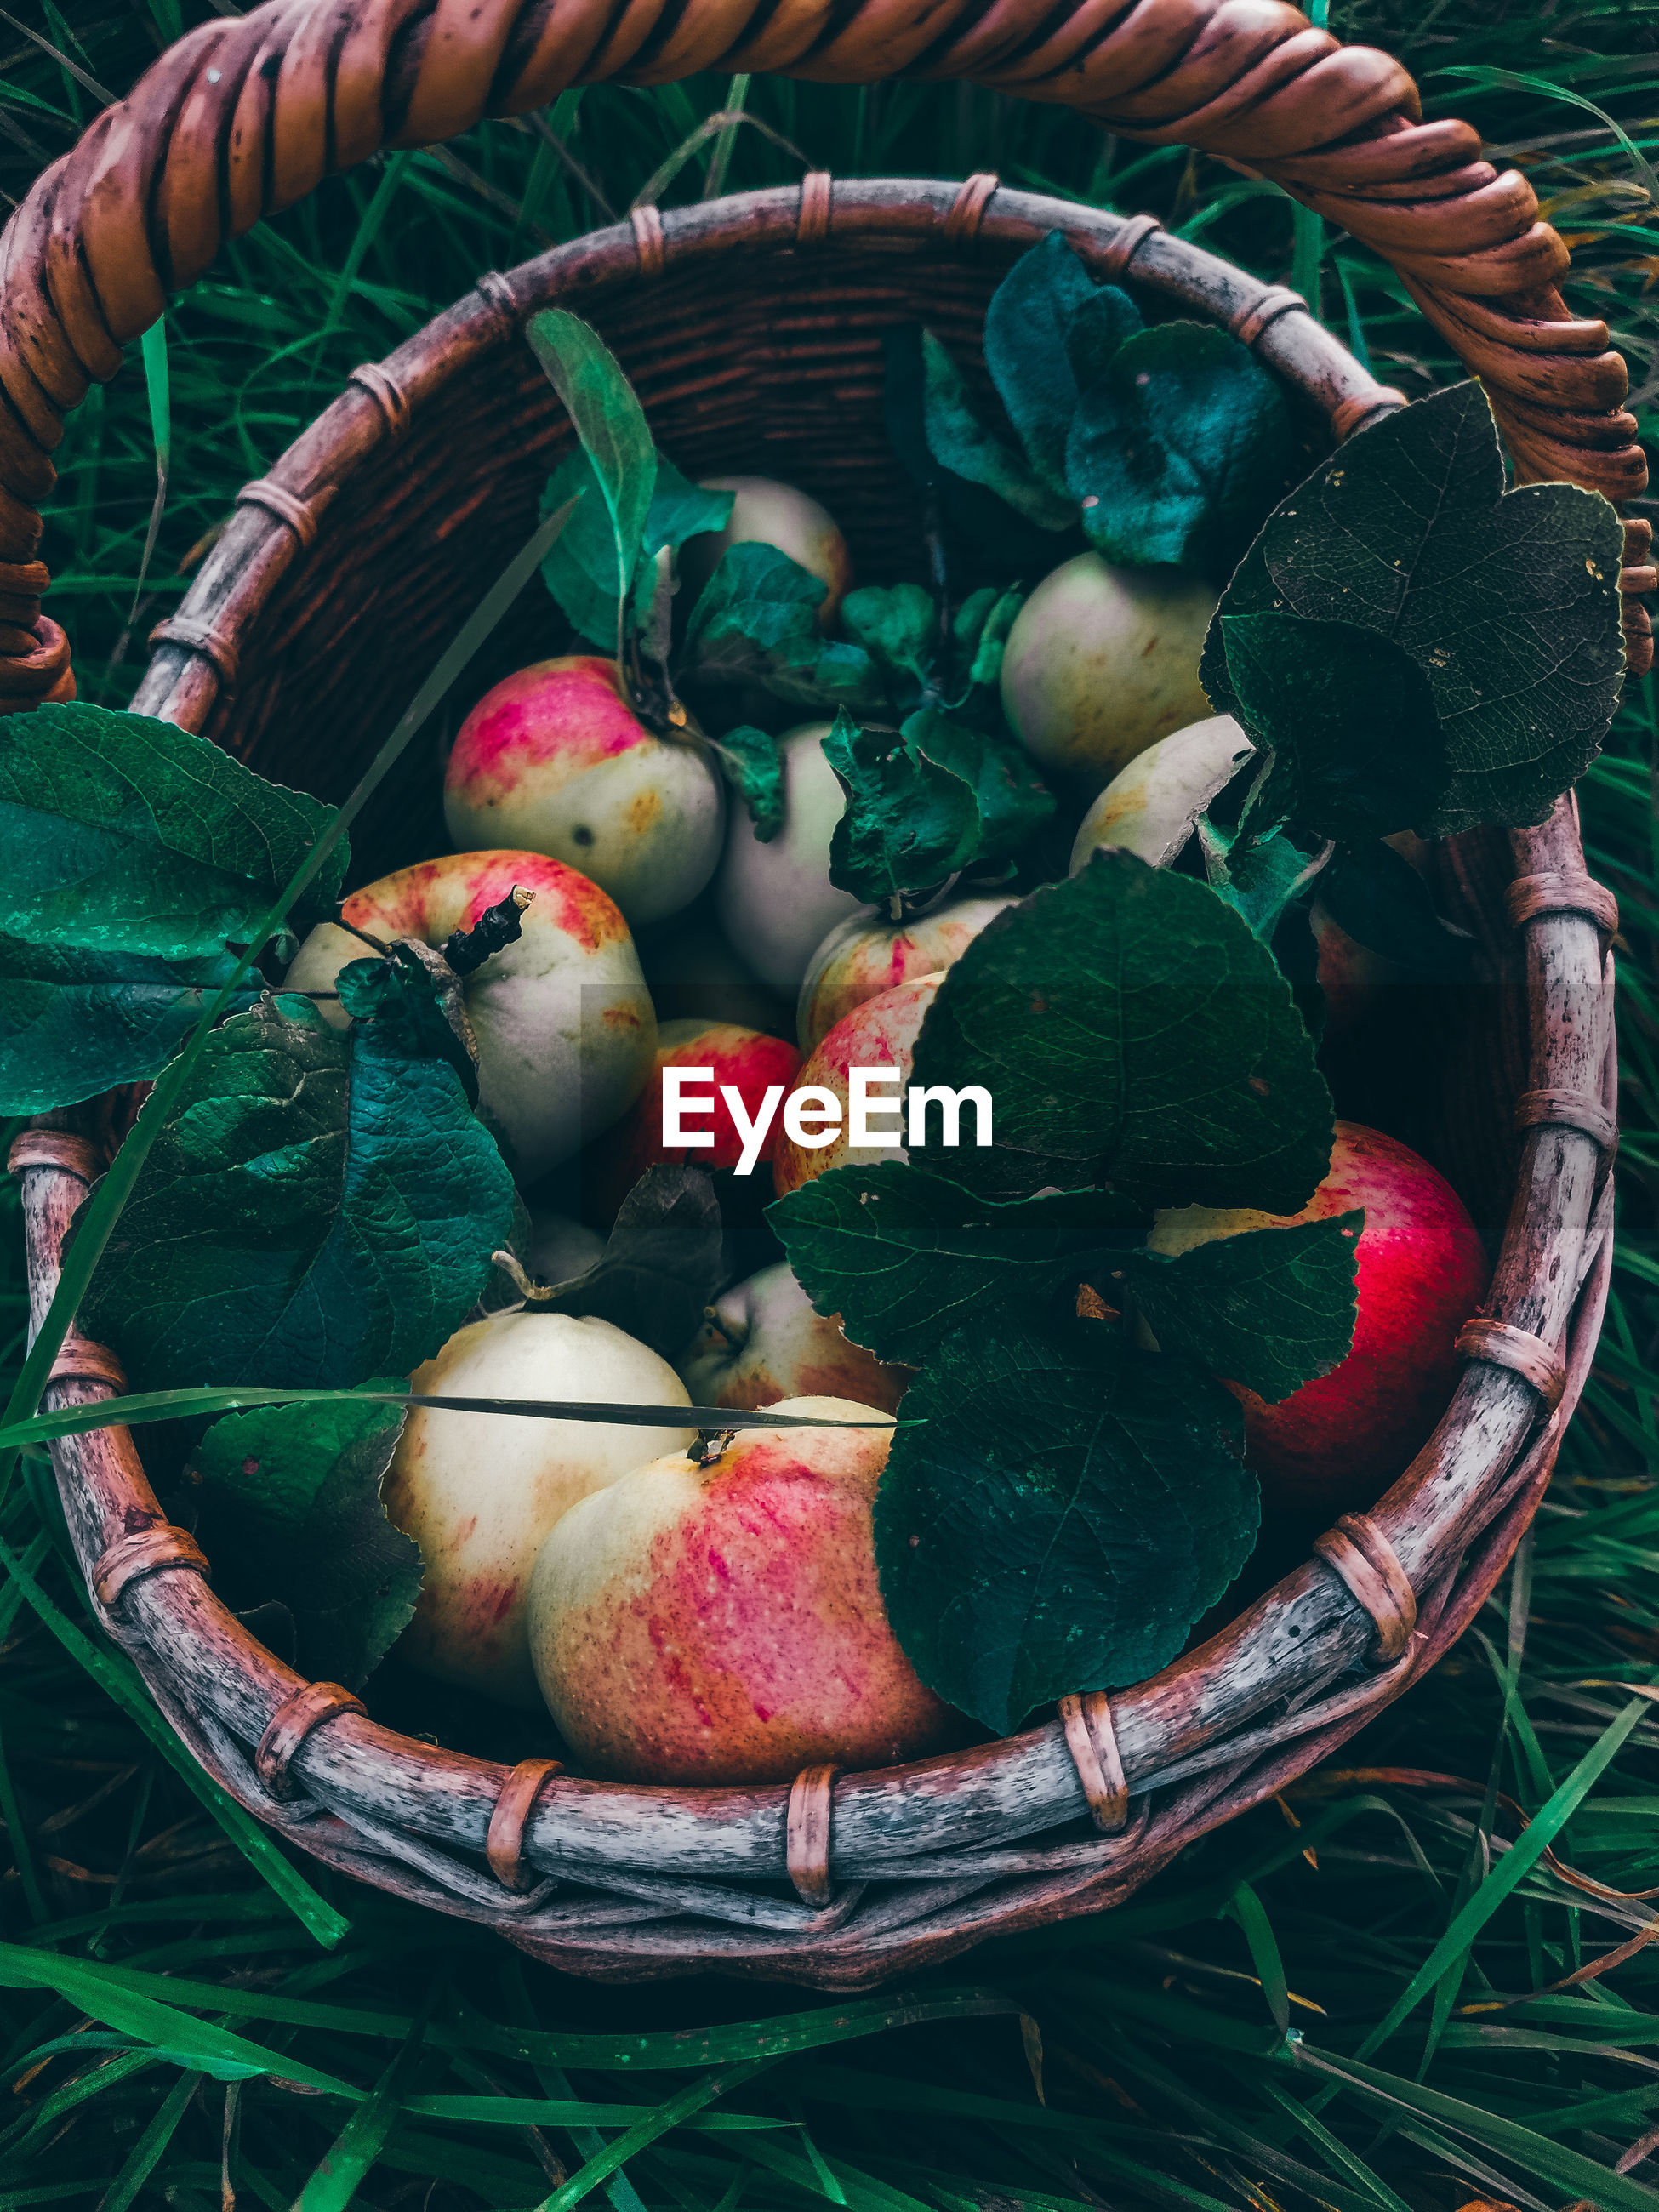 HIGH ANGLE VIEW OF FRESH FRUITS IN BASKET